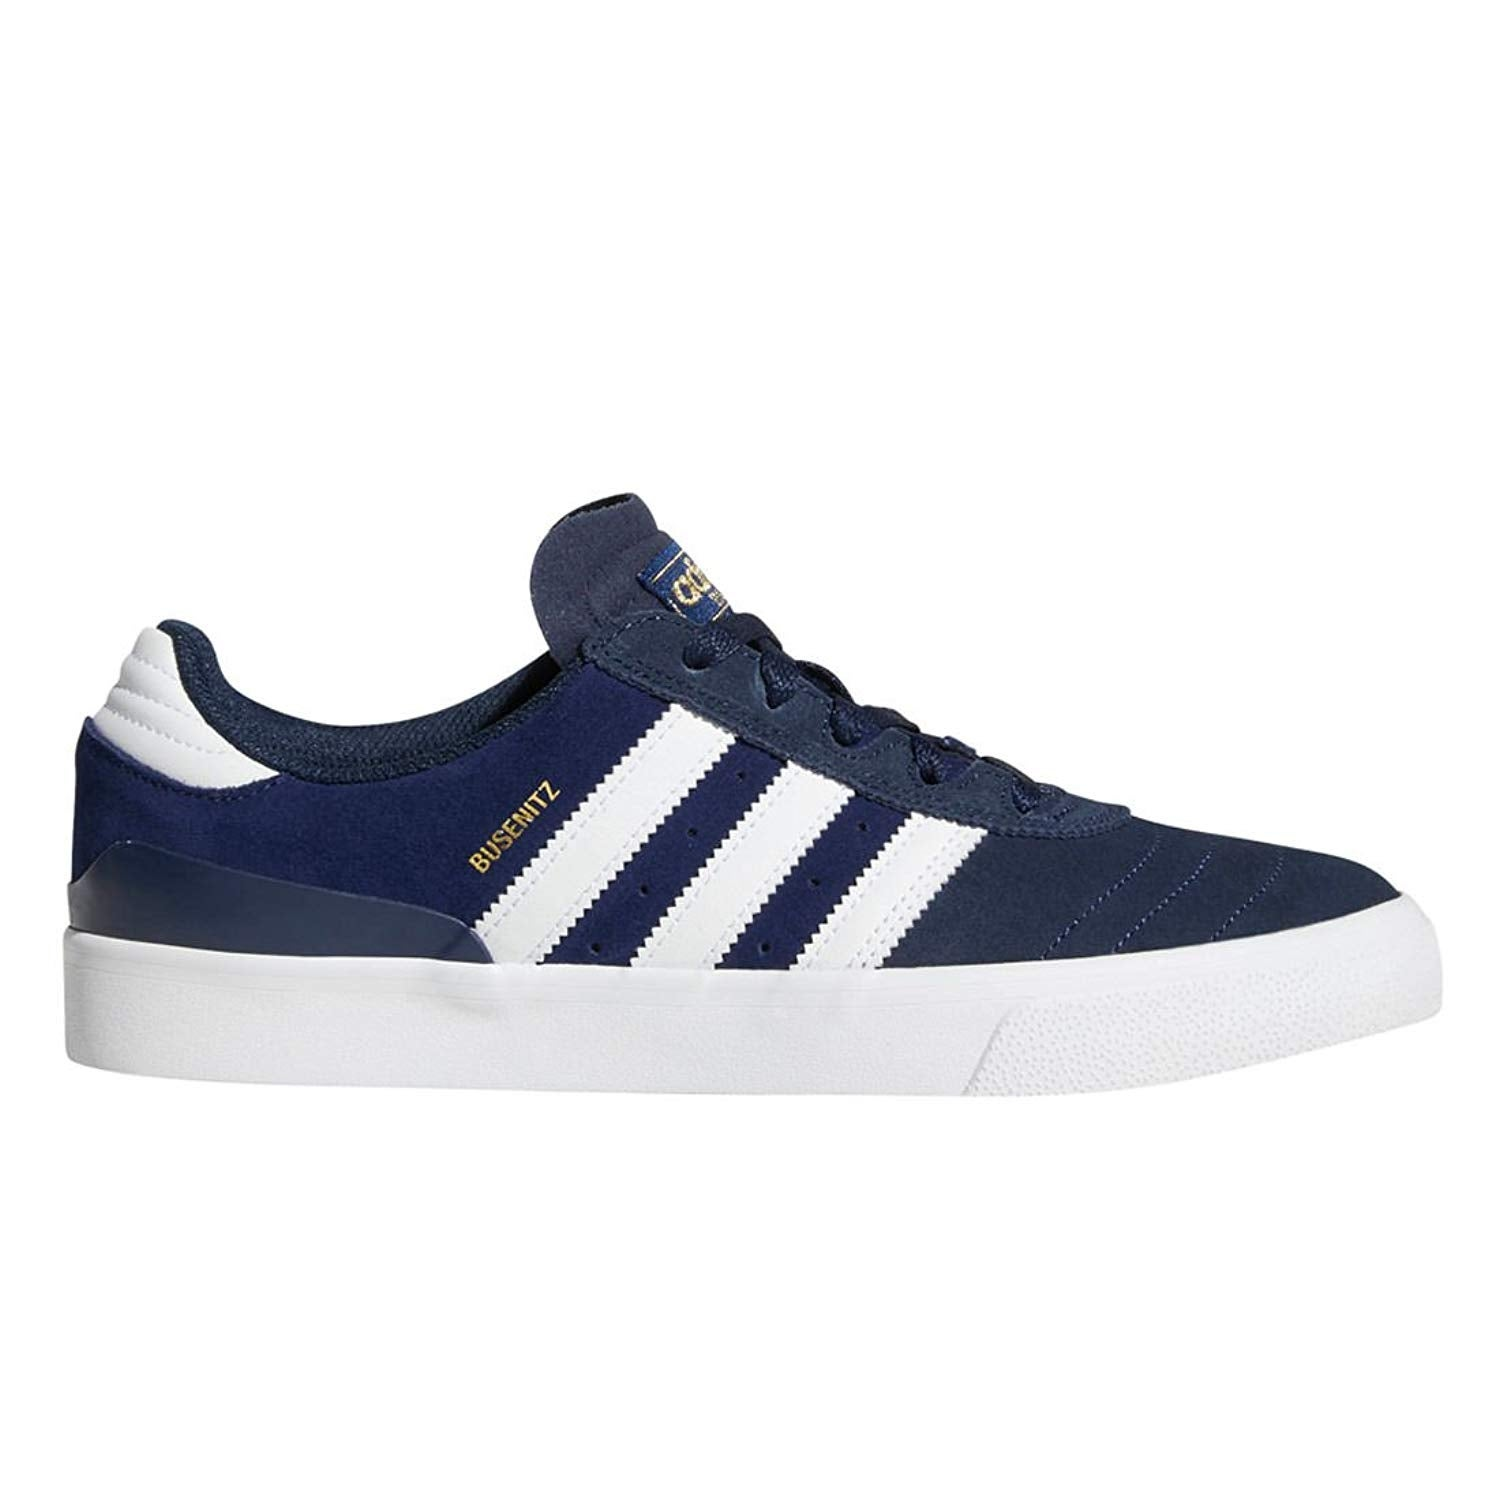 Adidas Men's Busenitz Vulc ADV Fashion Sneaker